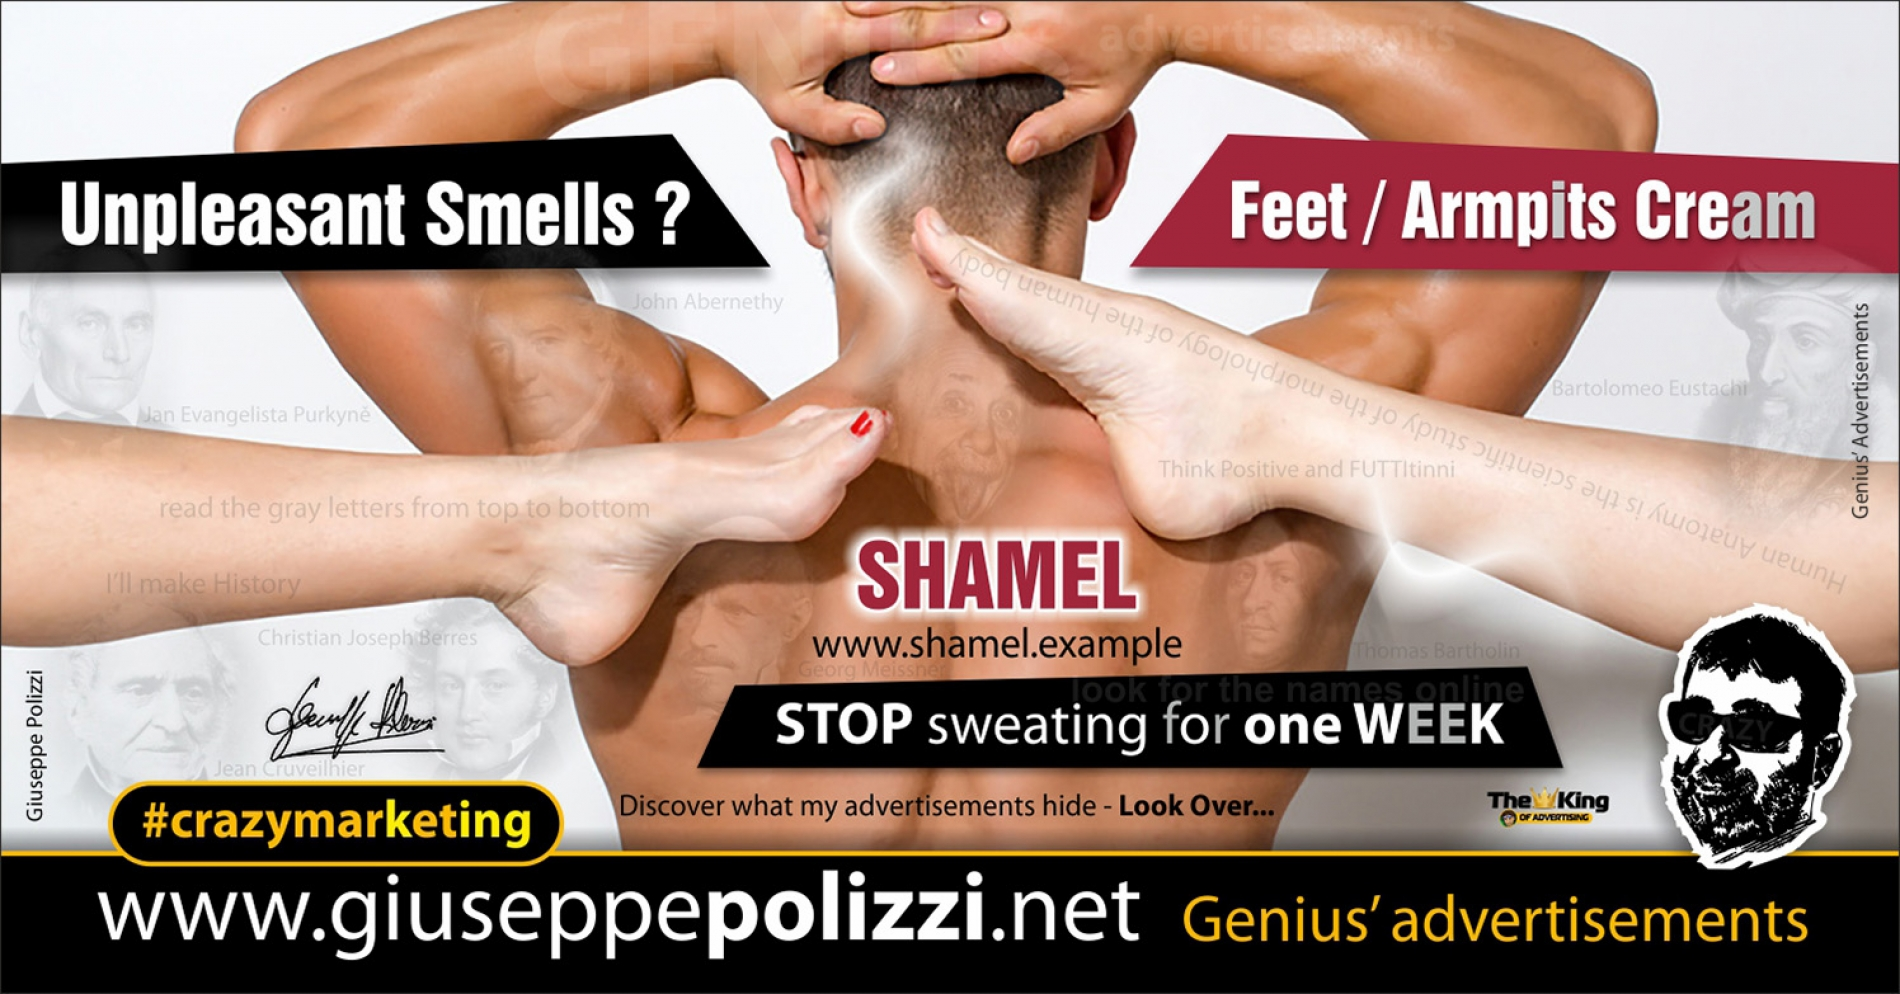 giuseppe polizzi crazymarketing Unpleasant Smells genius advertisements